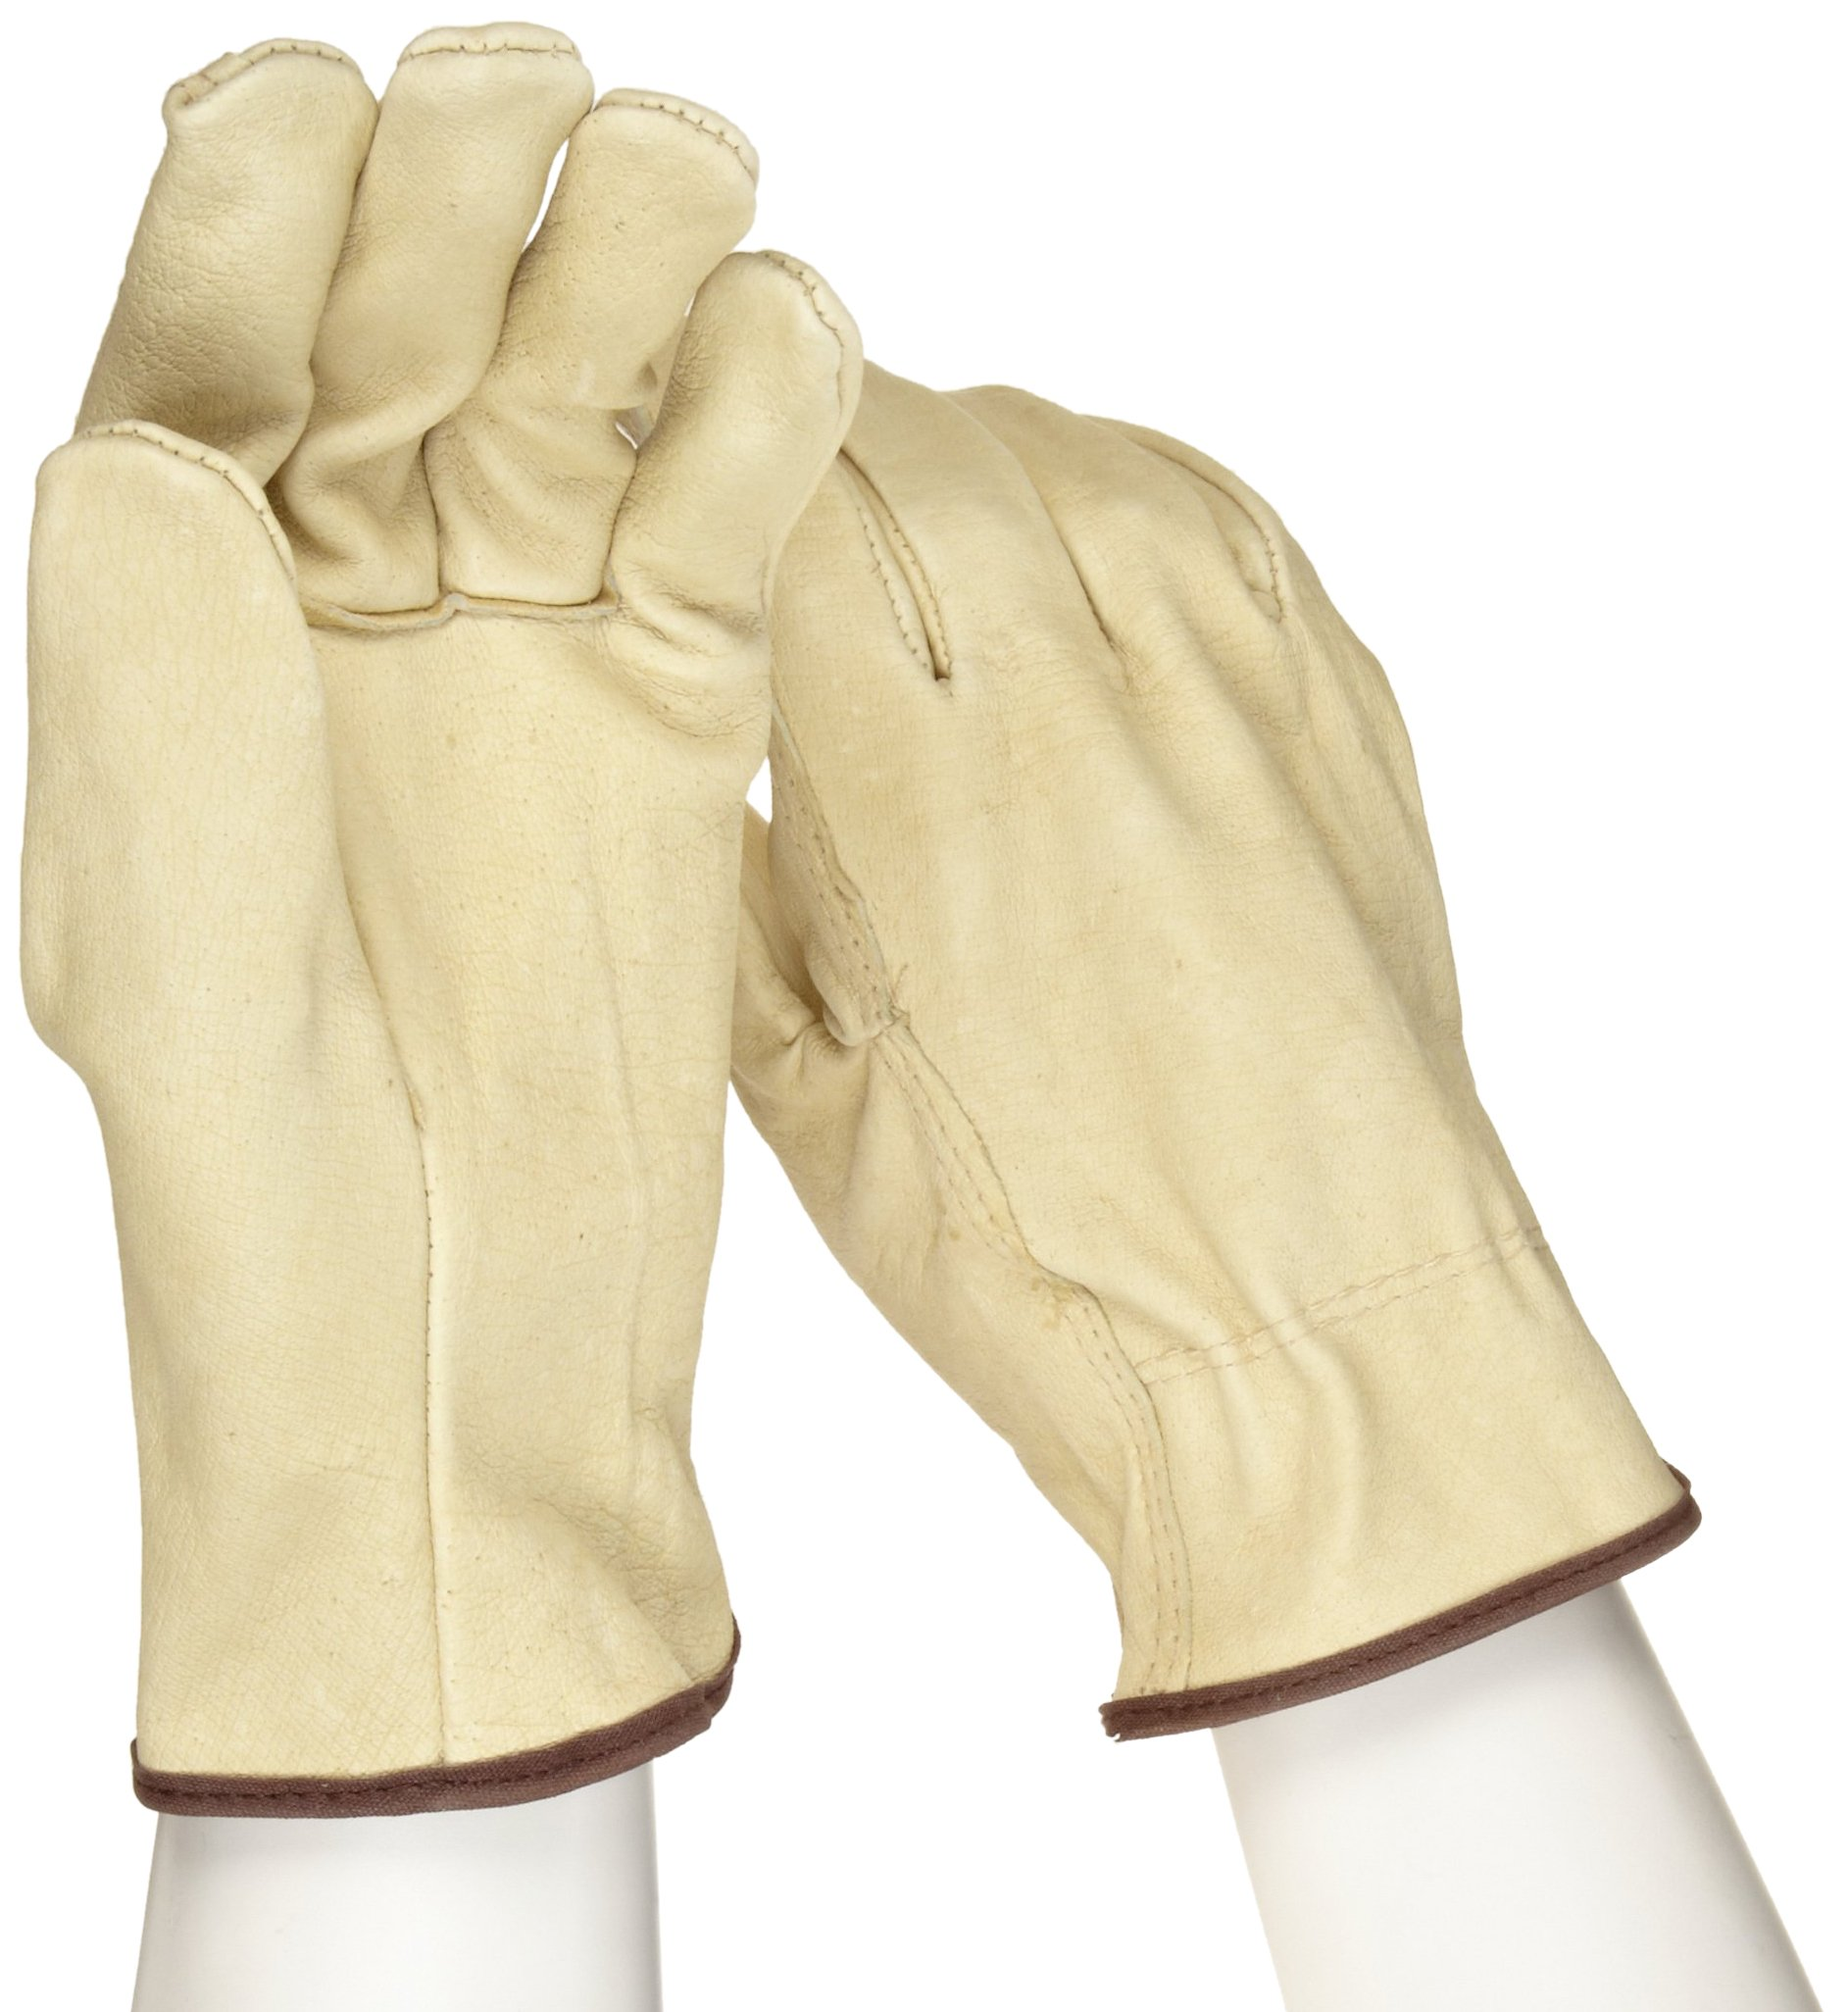 West Chester 994 Select Grain Pigskin Leather Driver Work Gloves: Straight Thumb, Large, 12 Pairs by West Chester (Image #2)